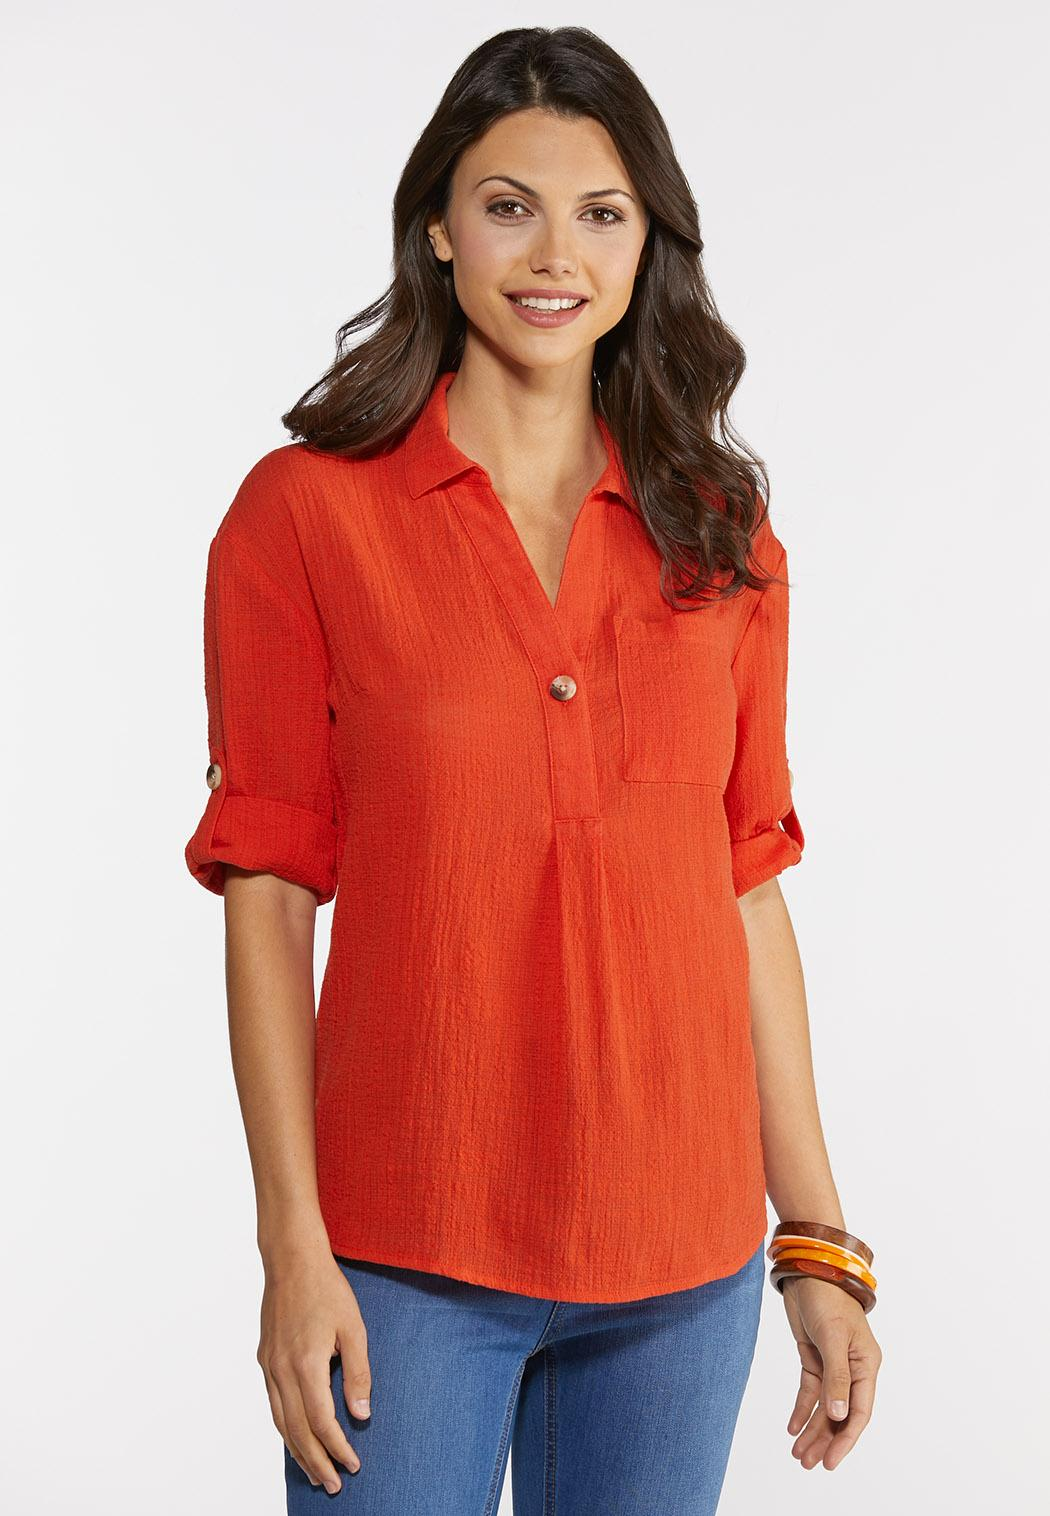 Plus Size Casual Summer Top